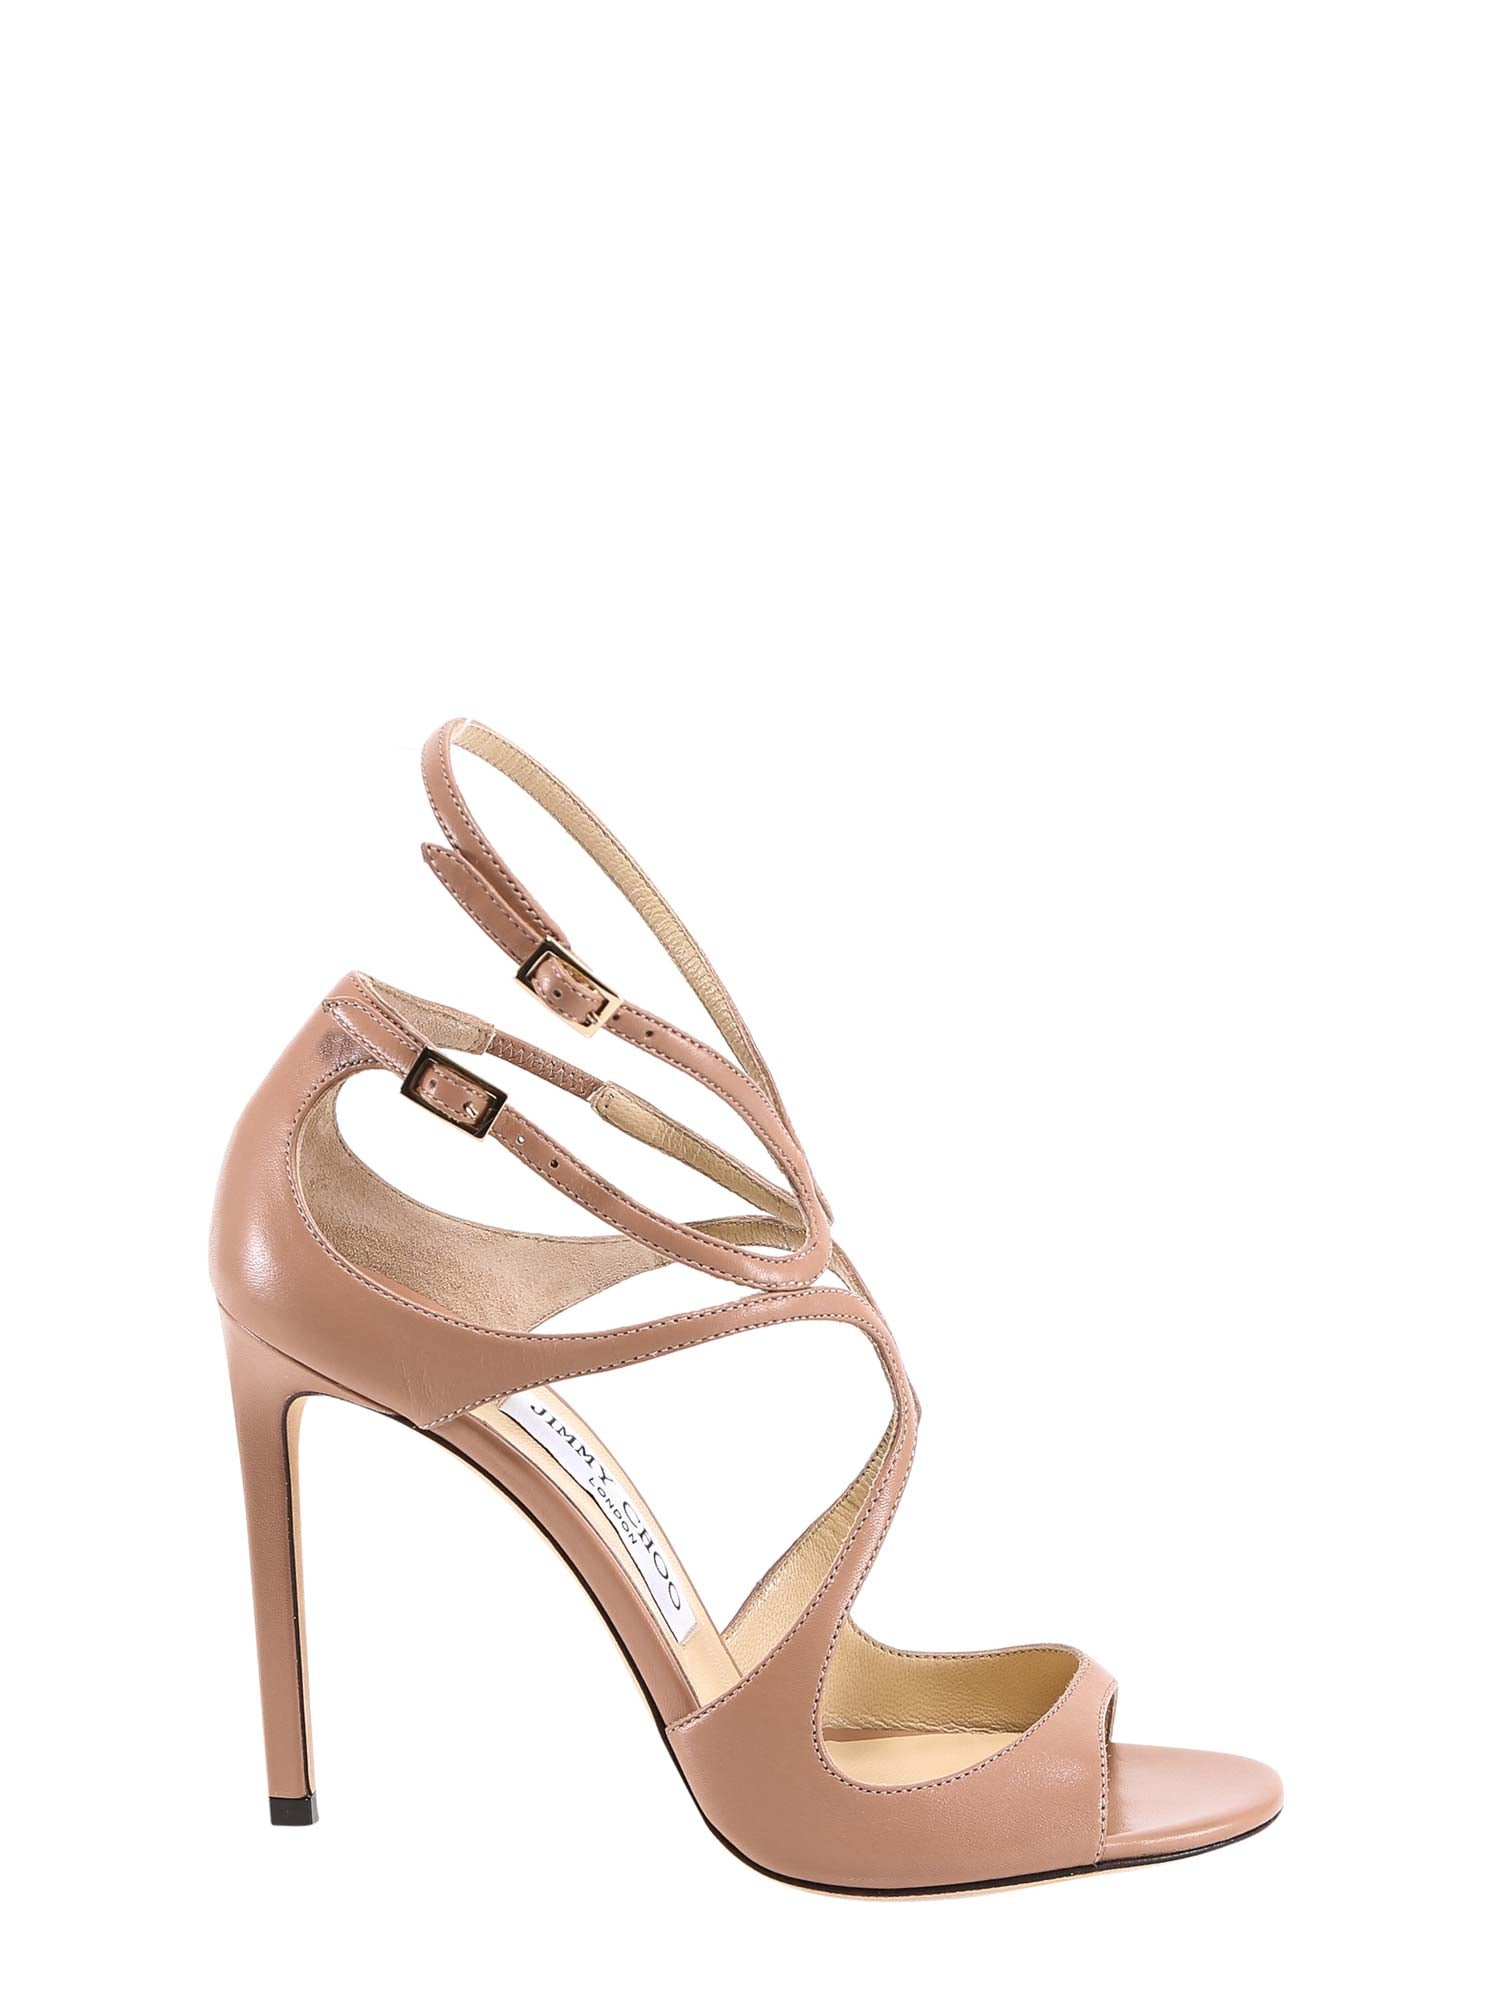 Jimmy Choo JIMMY CHOO LANG HEELED SANDALS